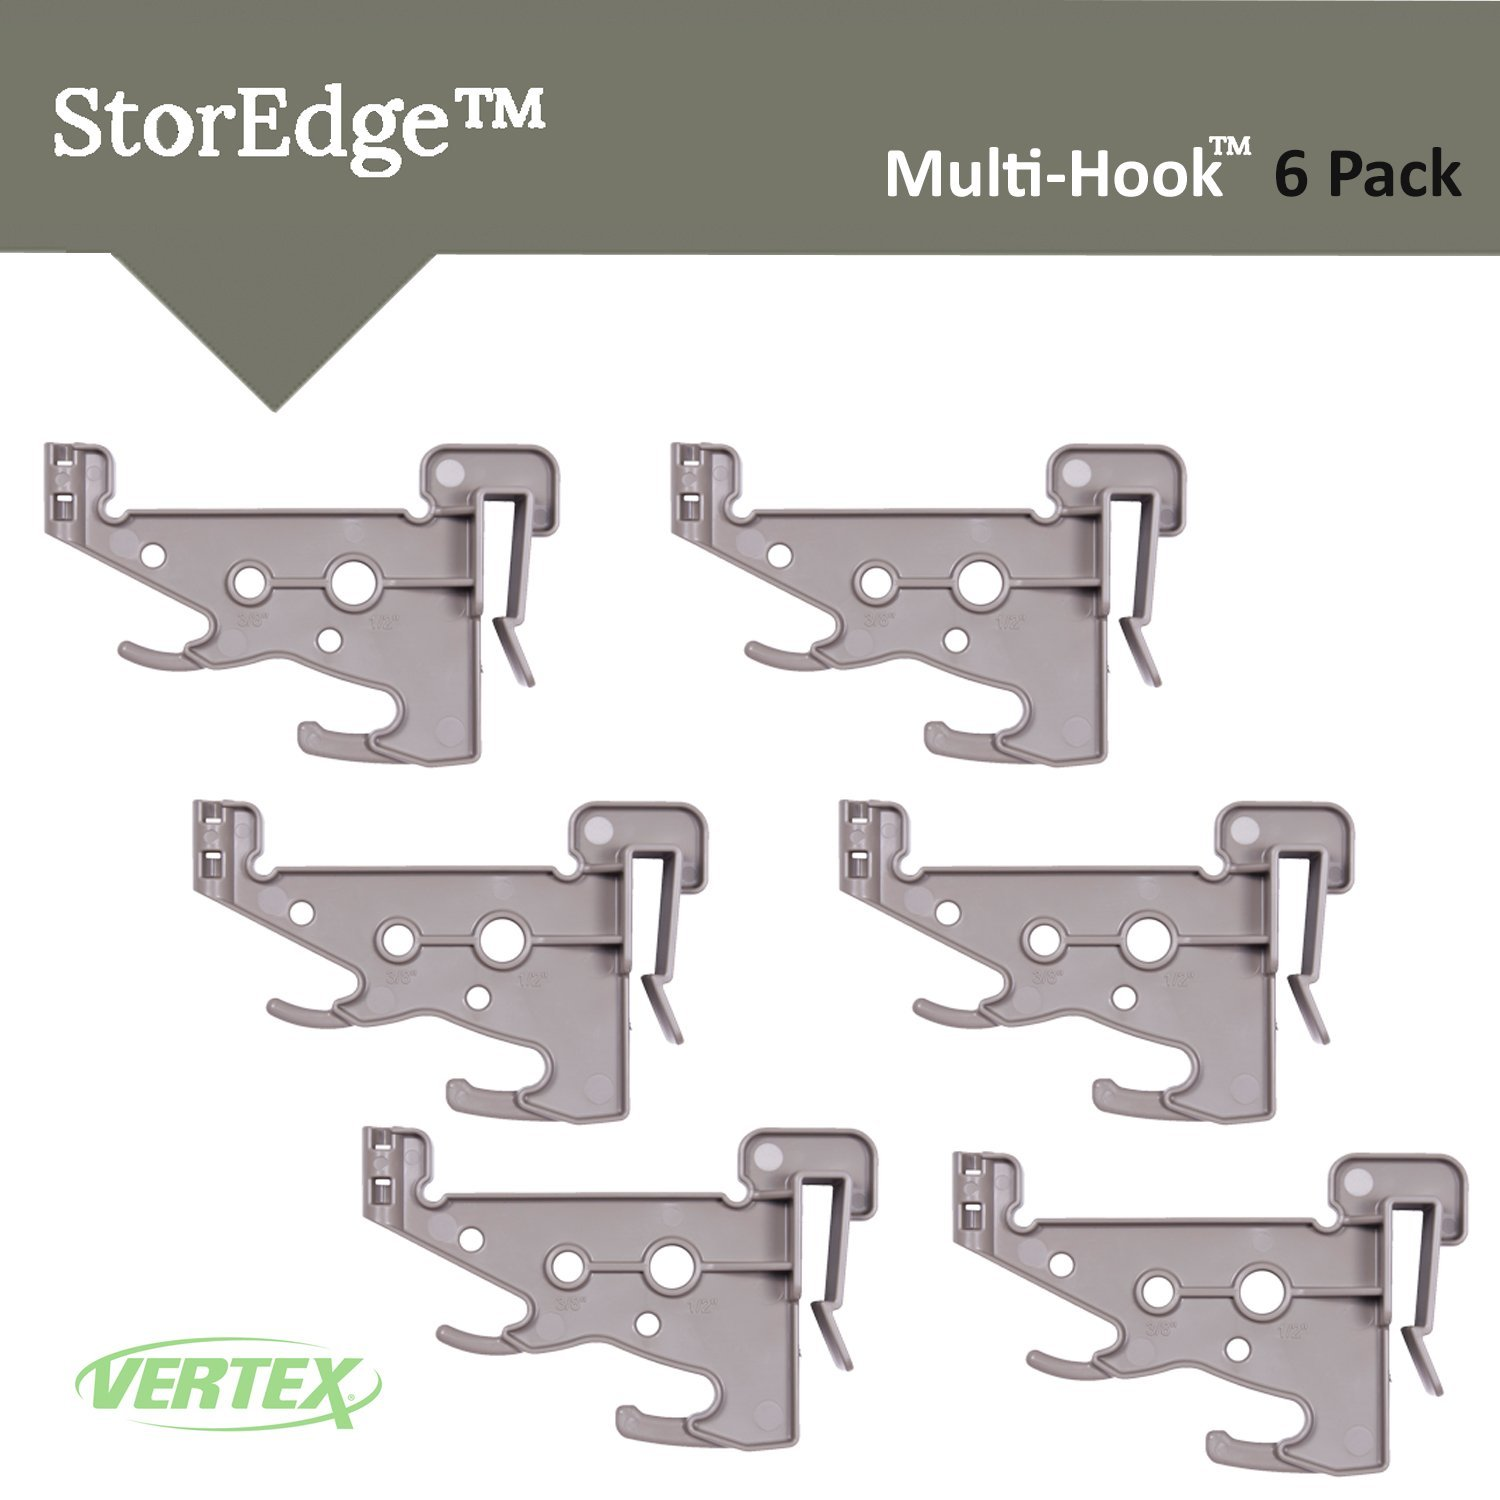 StorEdge Multi-Hook By Vertex Pack of 6 Hooks for StorEdge Super Duty Track Systems - Made In USA - Model SE806 (6 Pack) by Vertex